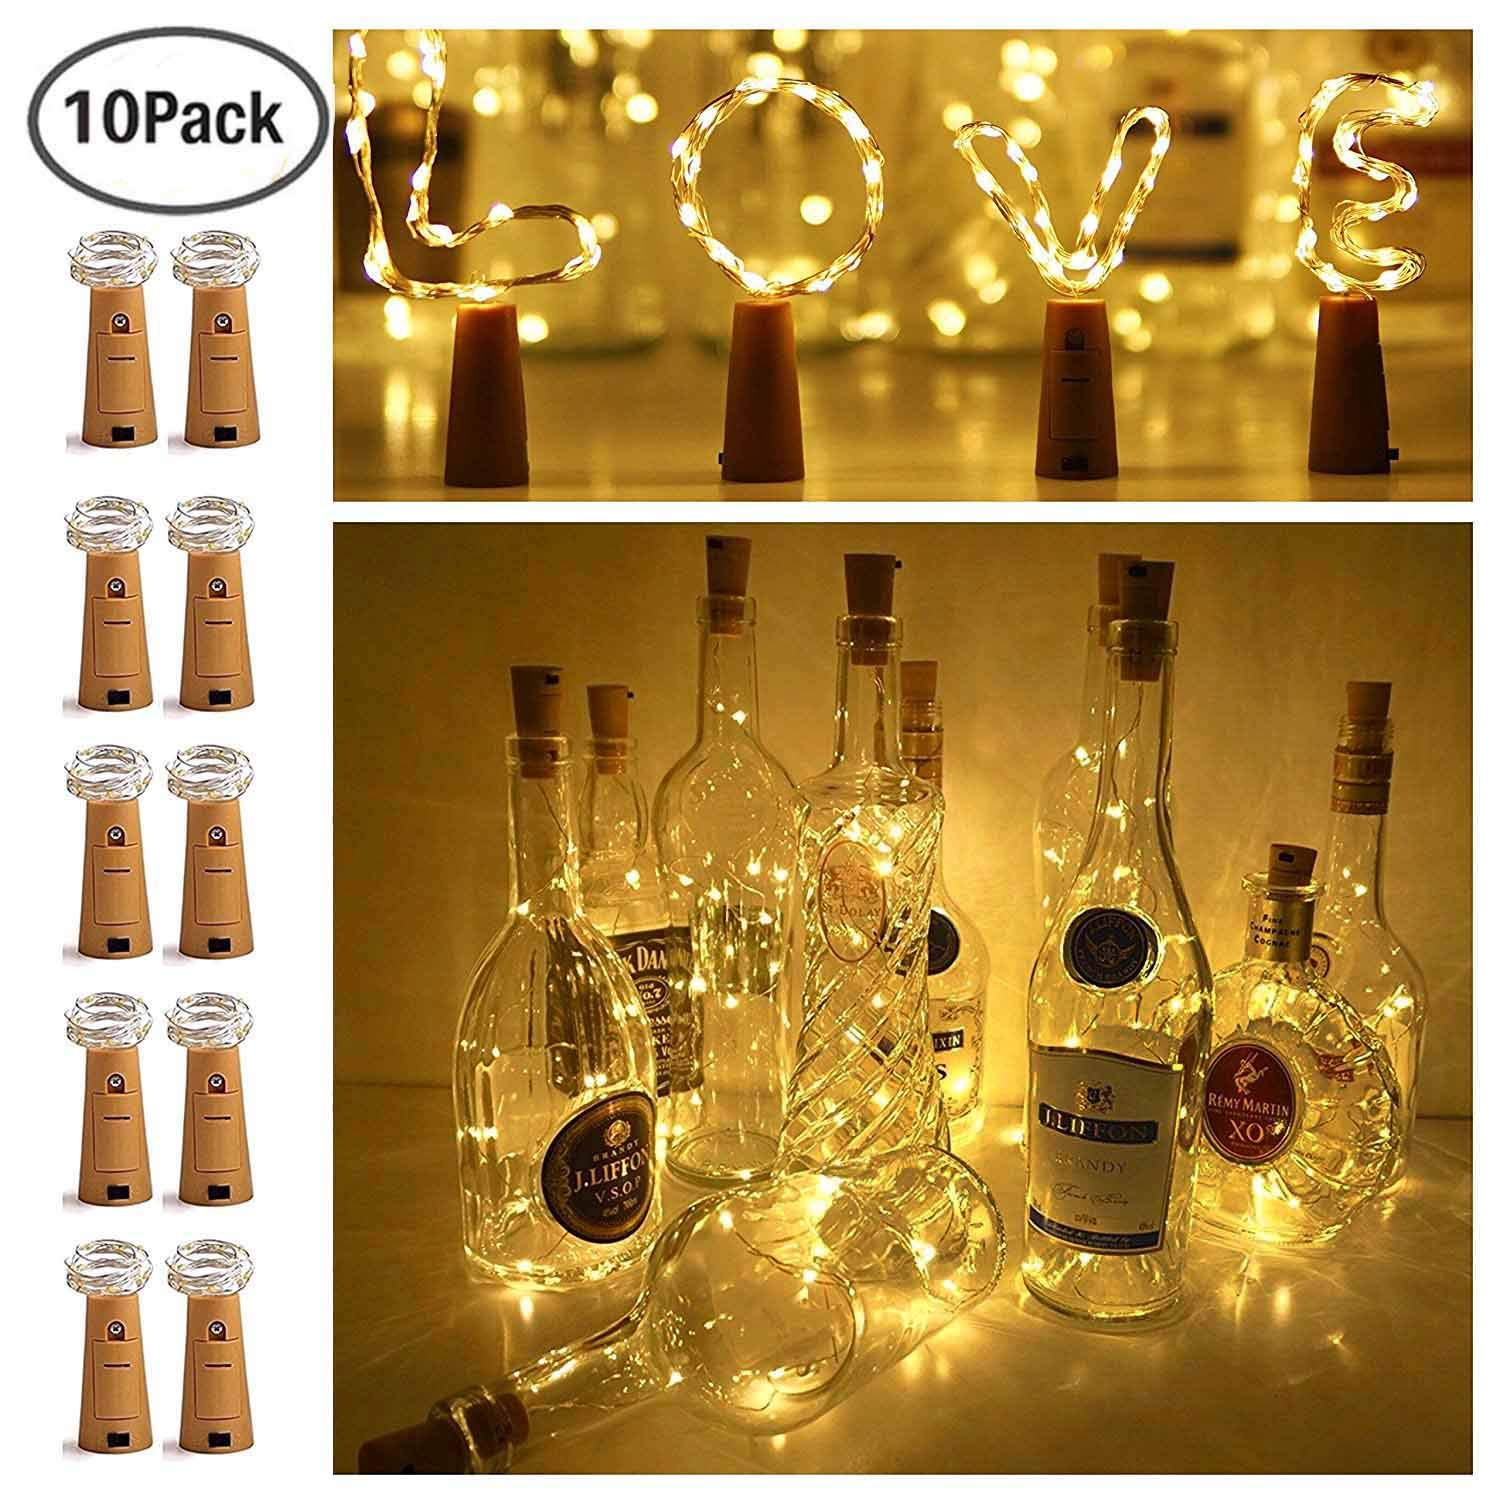 best sneakers 80078 c12a6 10 Pack 20 LED Wine Bottle Cork Lights Mini Fairy String Lights Copper  Wire, Battery Operated Starry Lights for DIY, Festival, Wedding, Party,  Indoor, ...